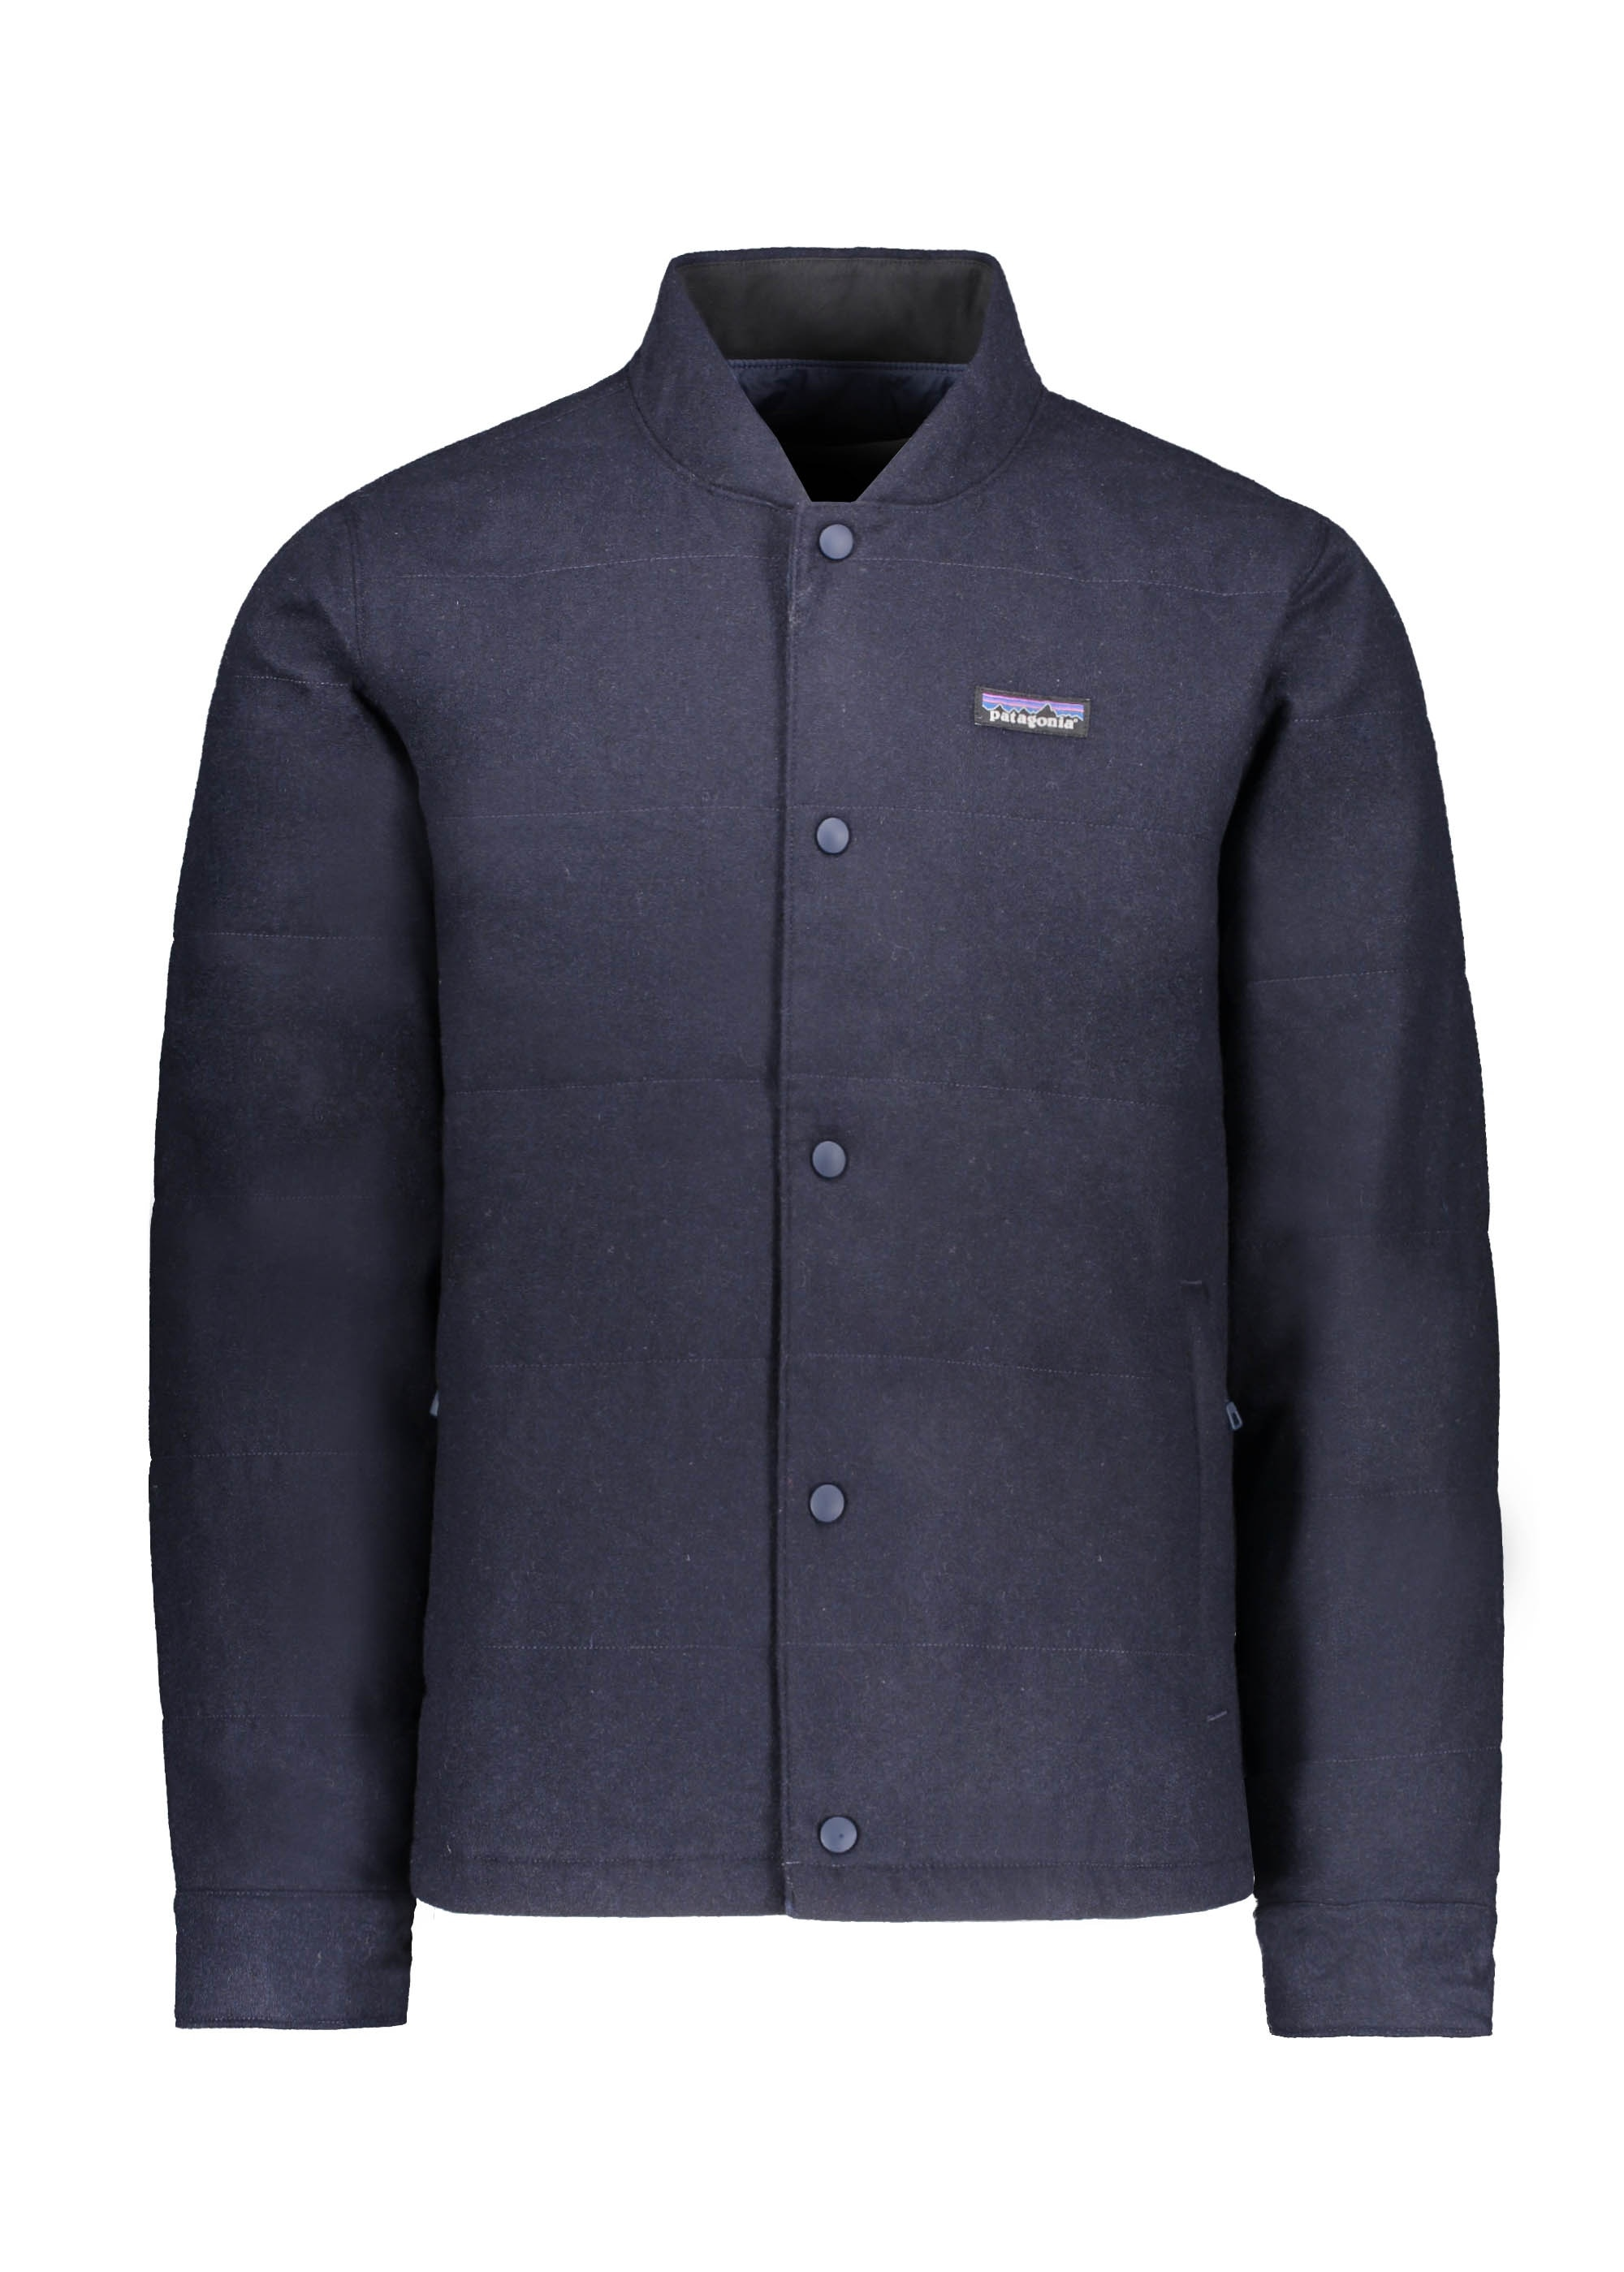 52a04343f Patagonia Recycled Wool Bomber - Classic Navy